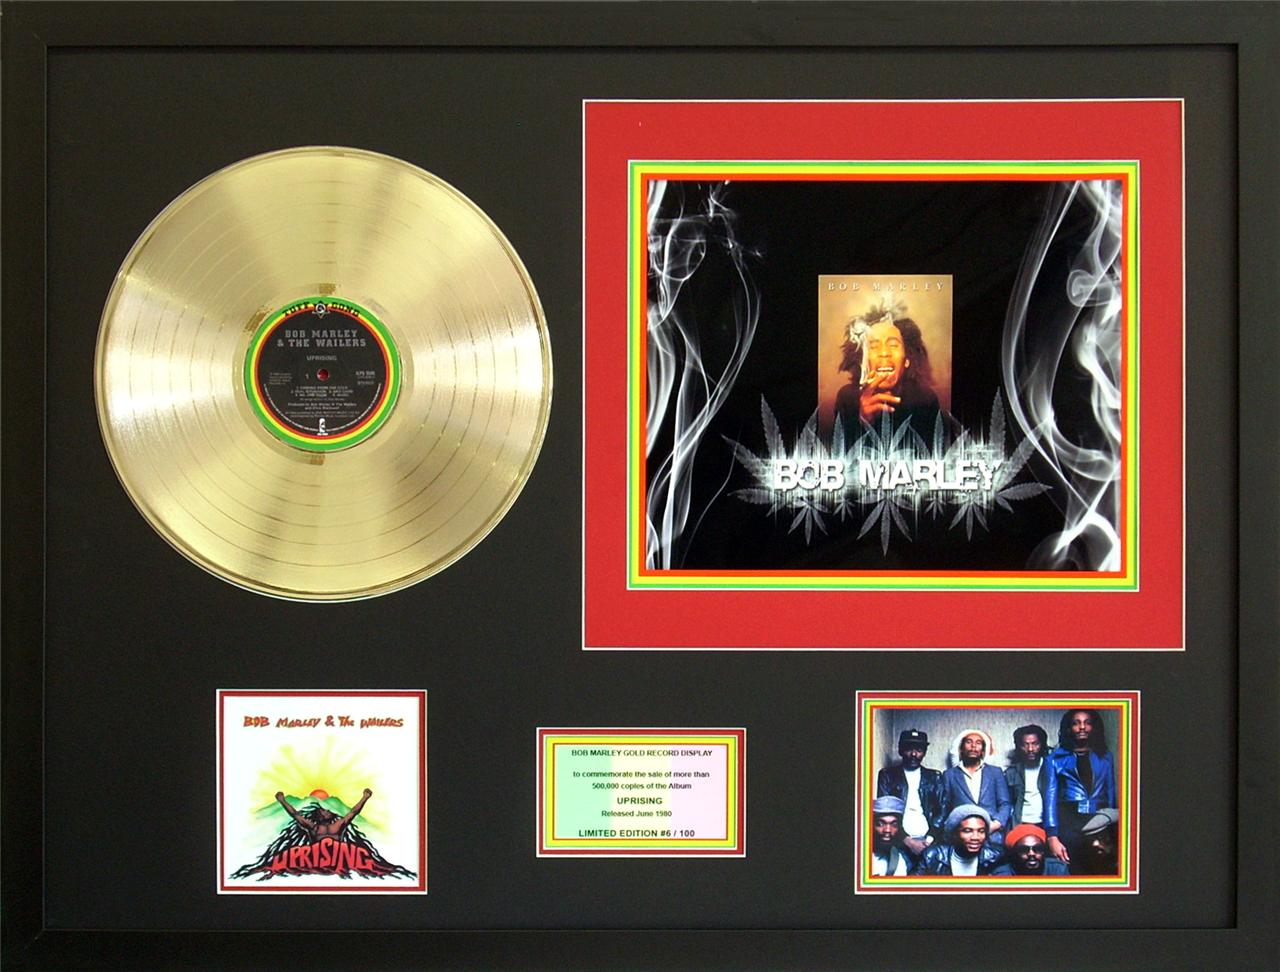 Bob-Marley-Rise-up-Gold-12-inch-Vinyl-Record-Framed-Music-Memorabilia-Display